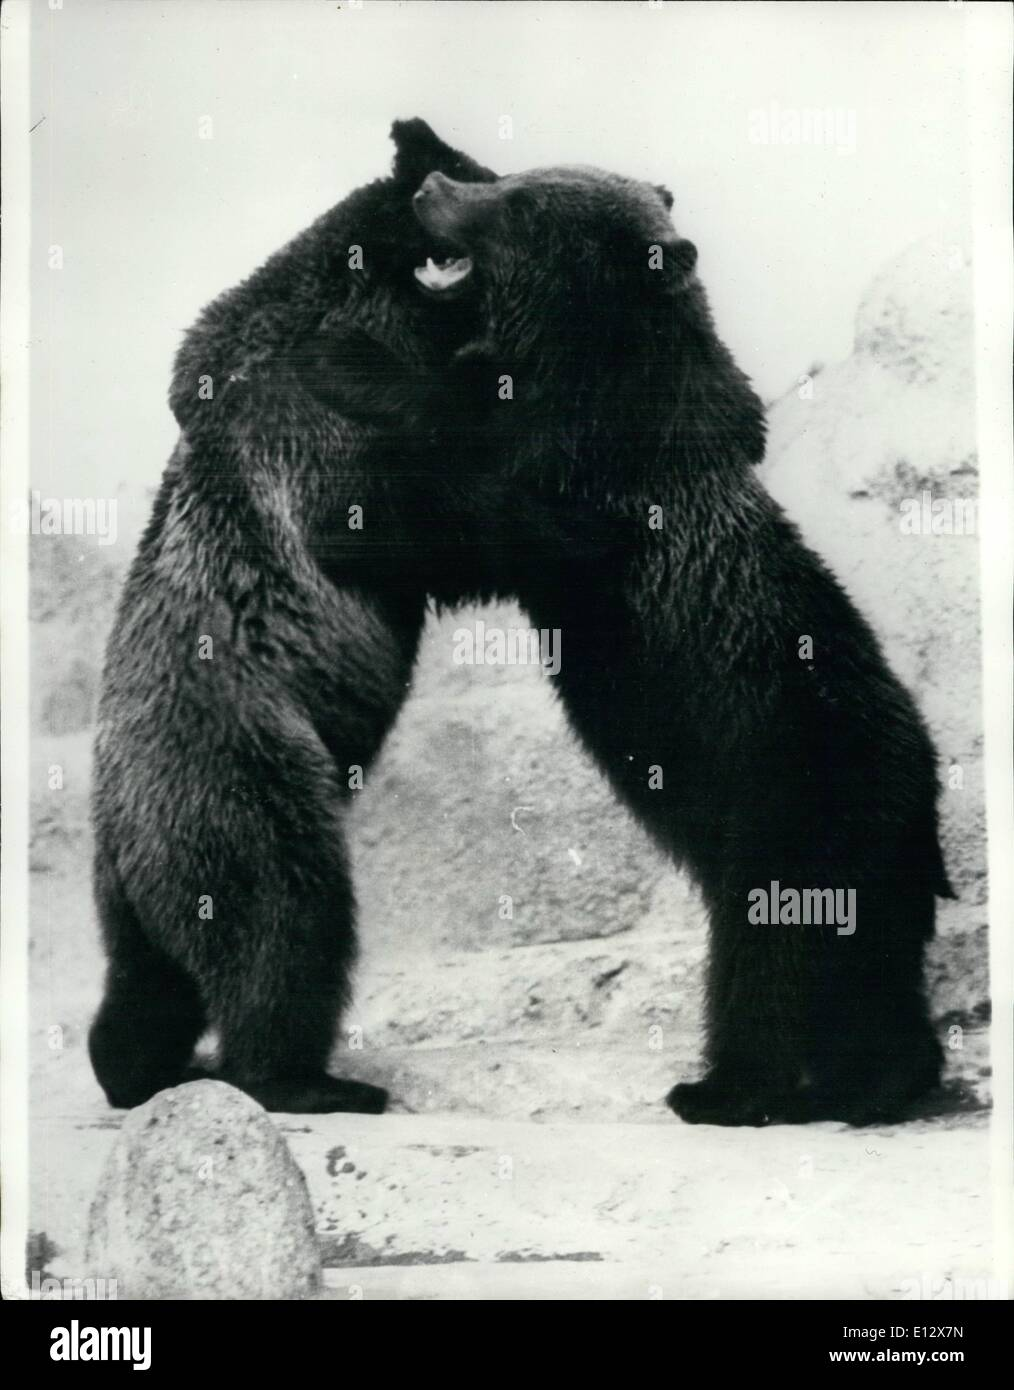 Feb. 25, 2012 - Bear Hug : ''it's Lovely to meet you again'' said the two bears as they got in to a fond Embrace. - Stock Image